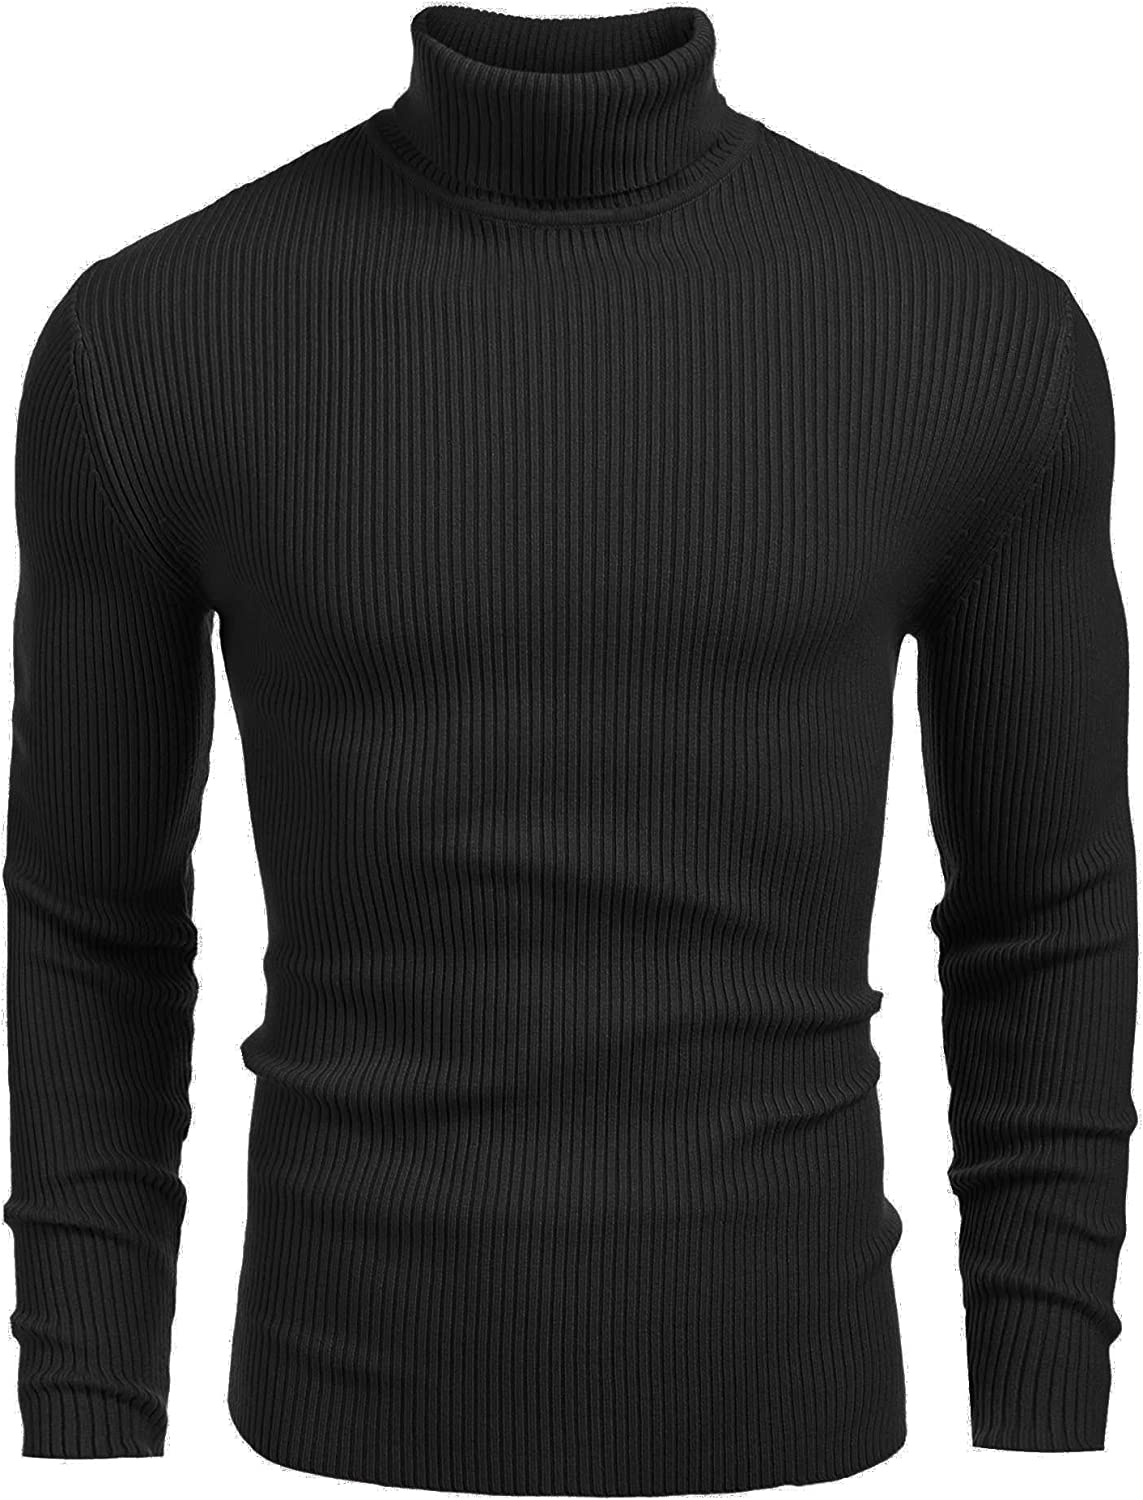 Coofandy Mens Turtle Neck Jumpers Ribbed Slim Fit Knitted Pullover Turtleneck Sweater Solid Color